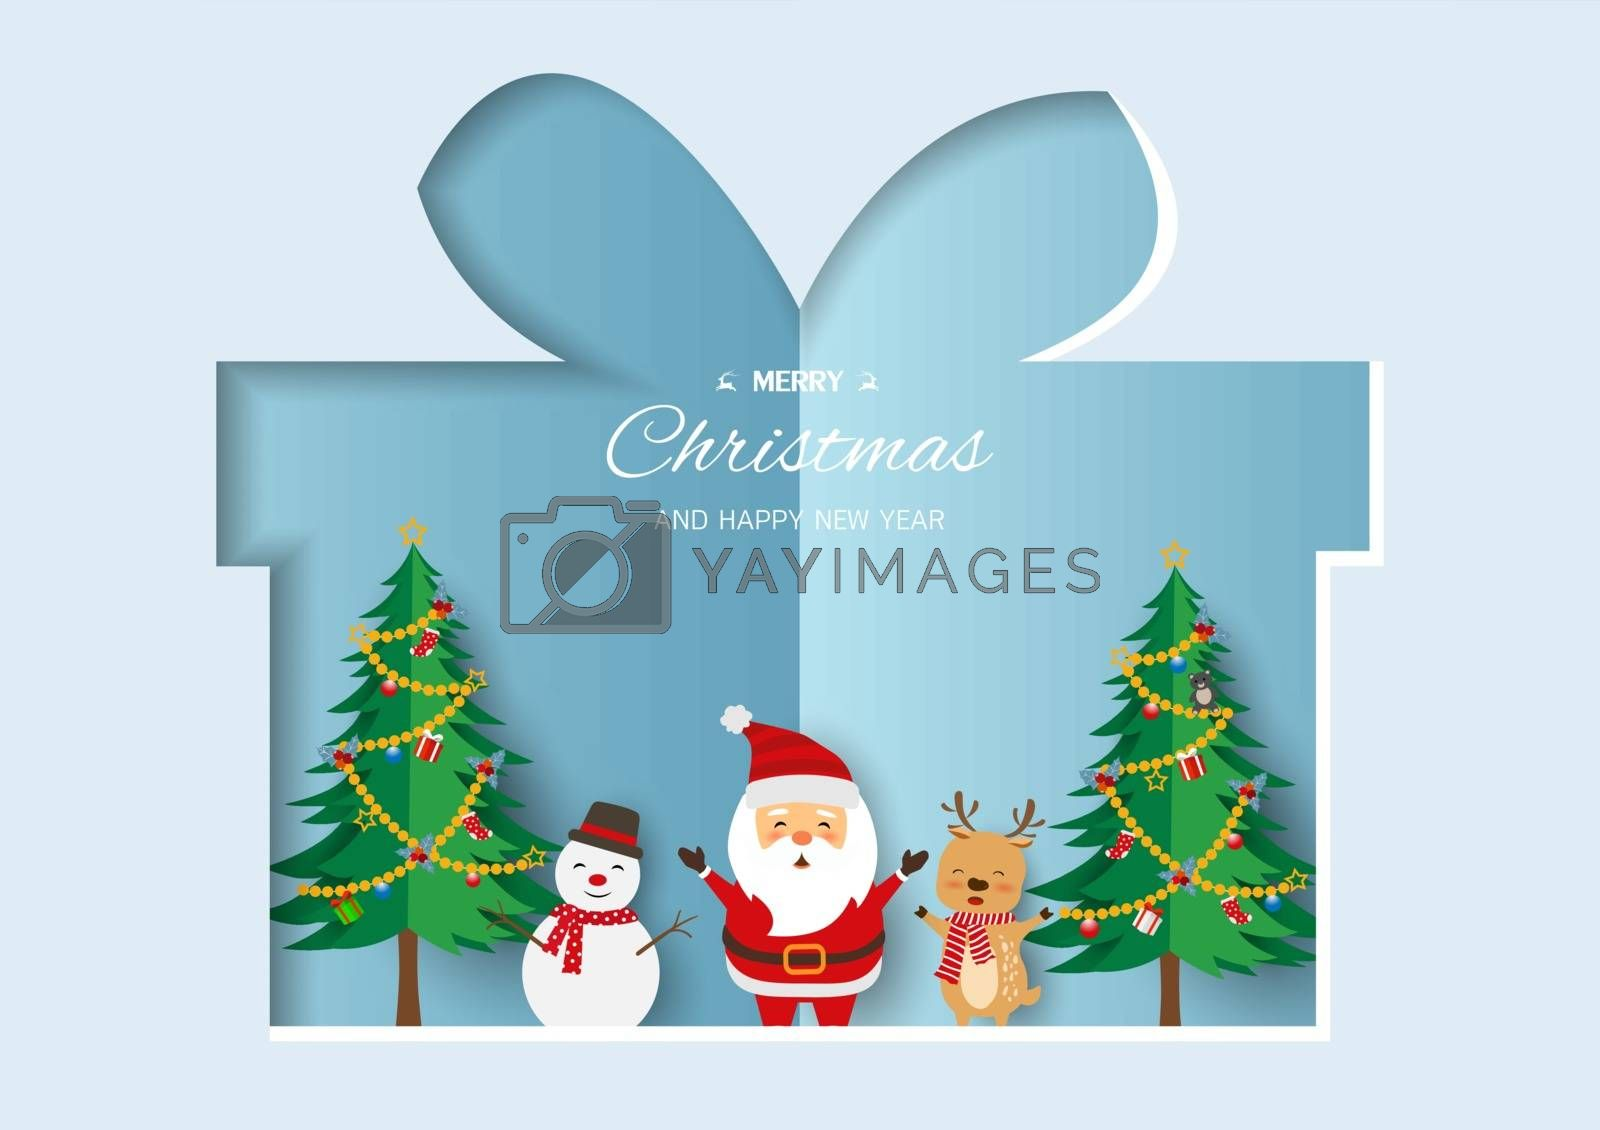 Merry Christmas and Happy new year greeting card,Santa Claus with friends happy on soft blue paper art background,vector illustration